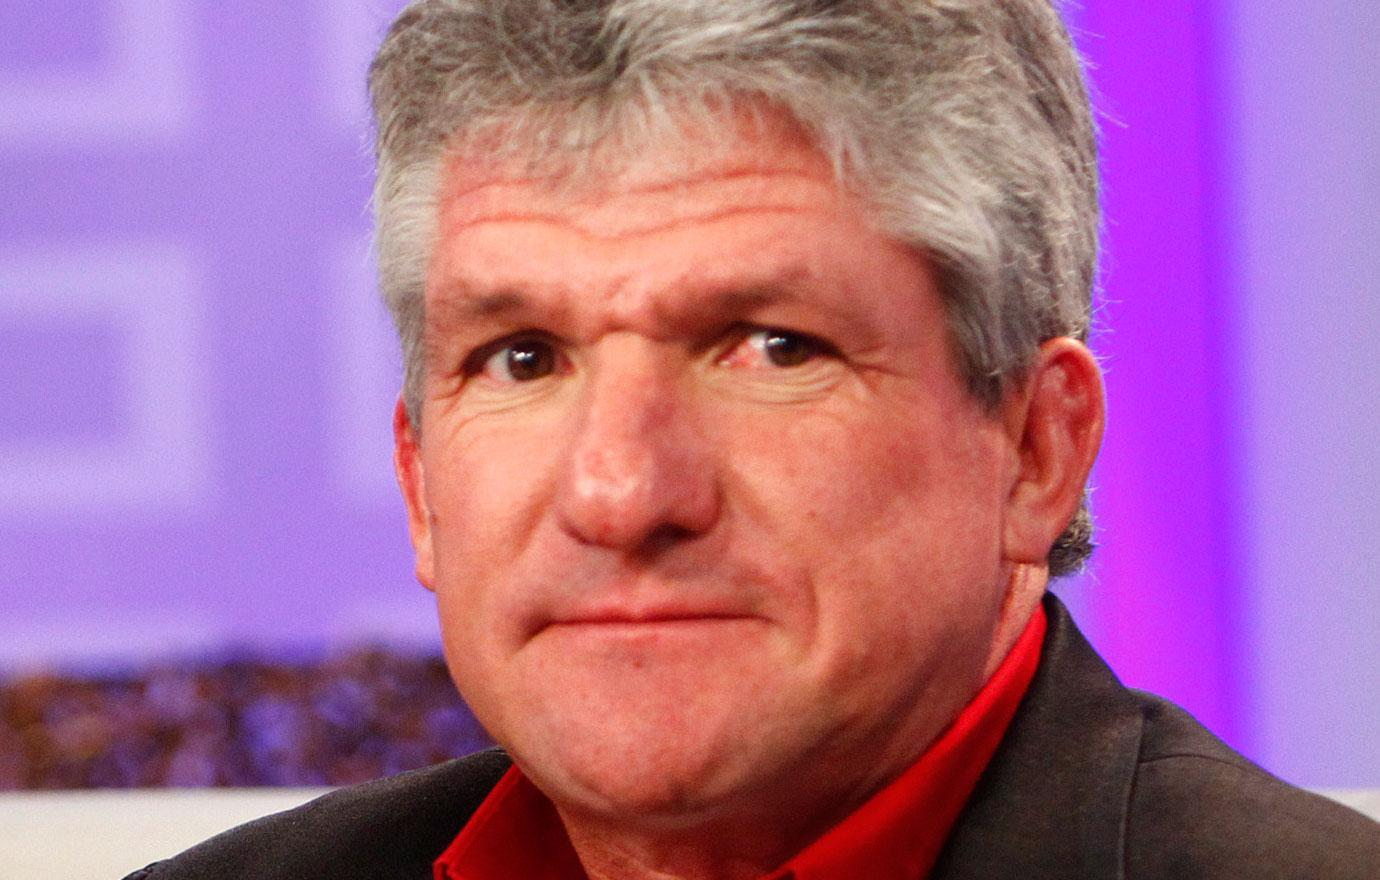 Matt Roloff In Arizona Again After He Lied About New Arizona Home